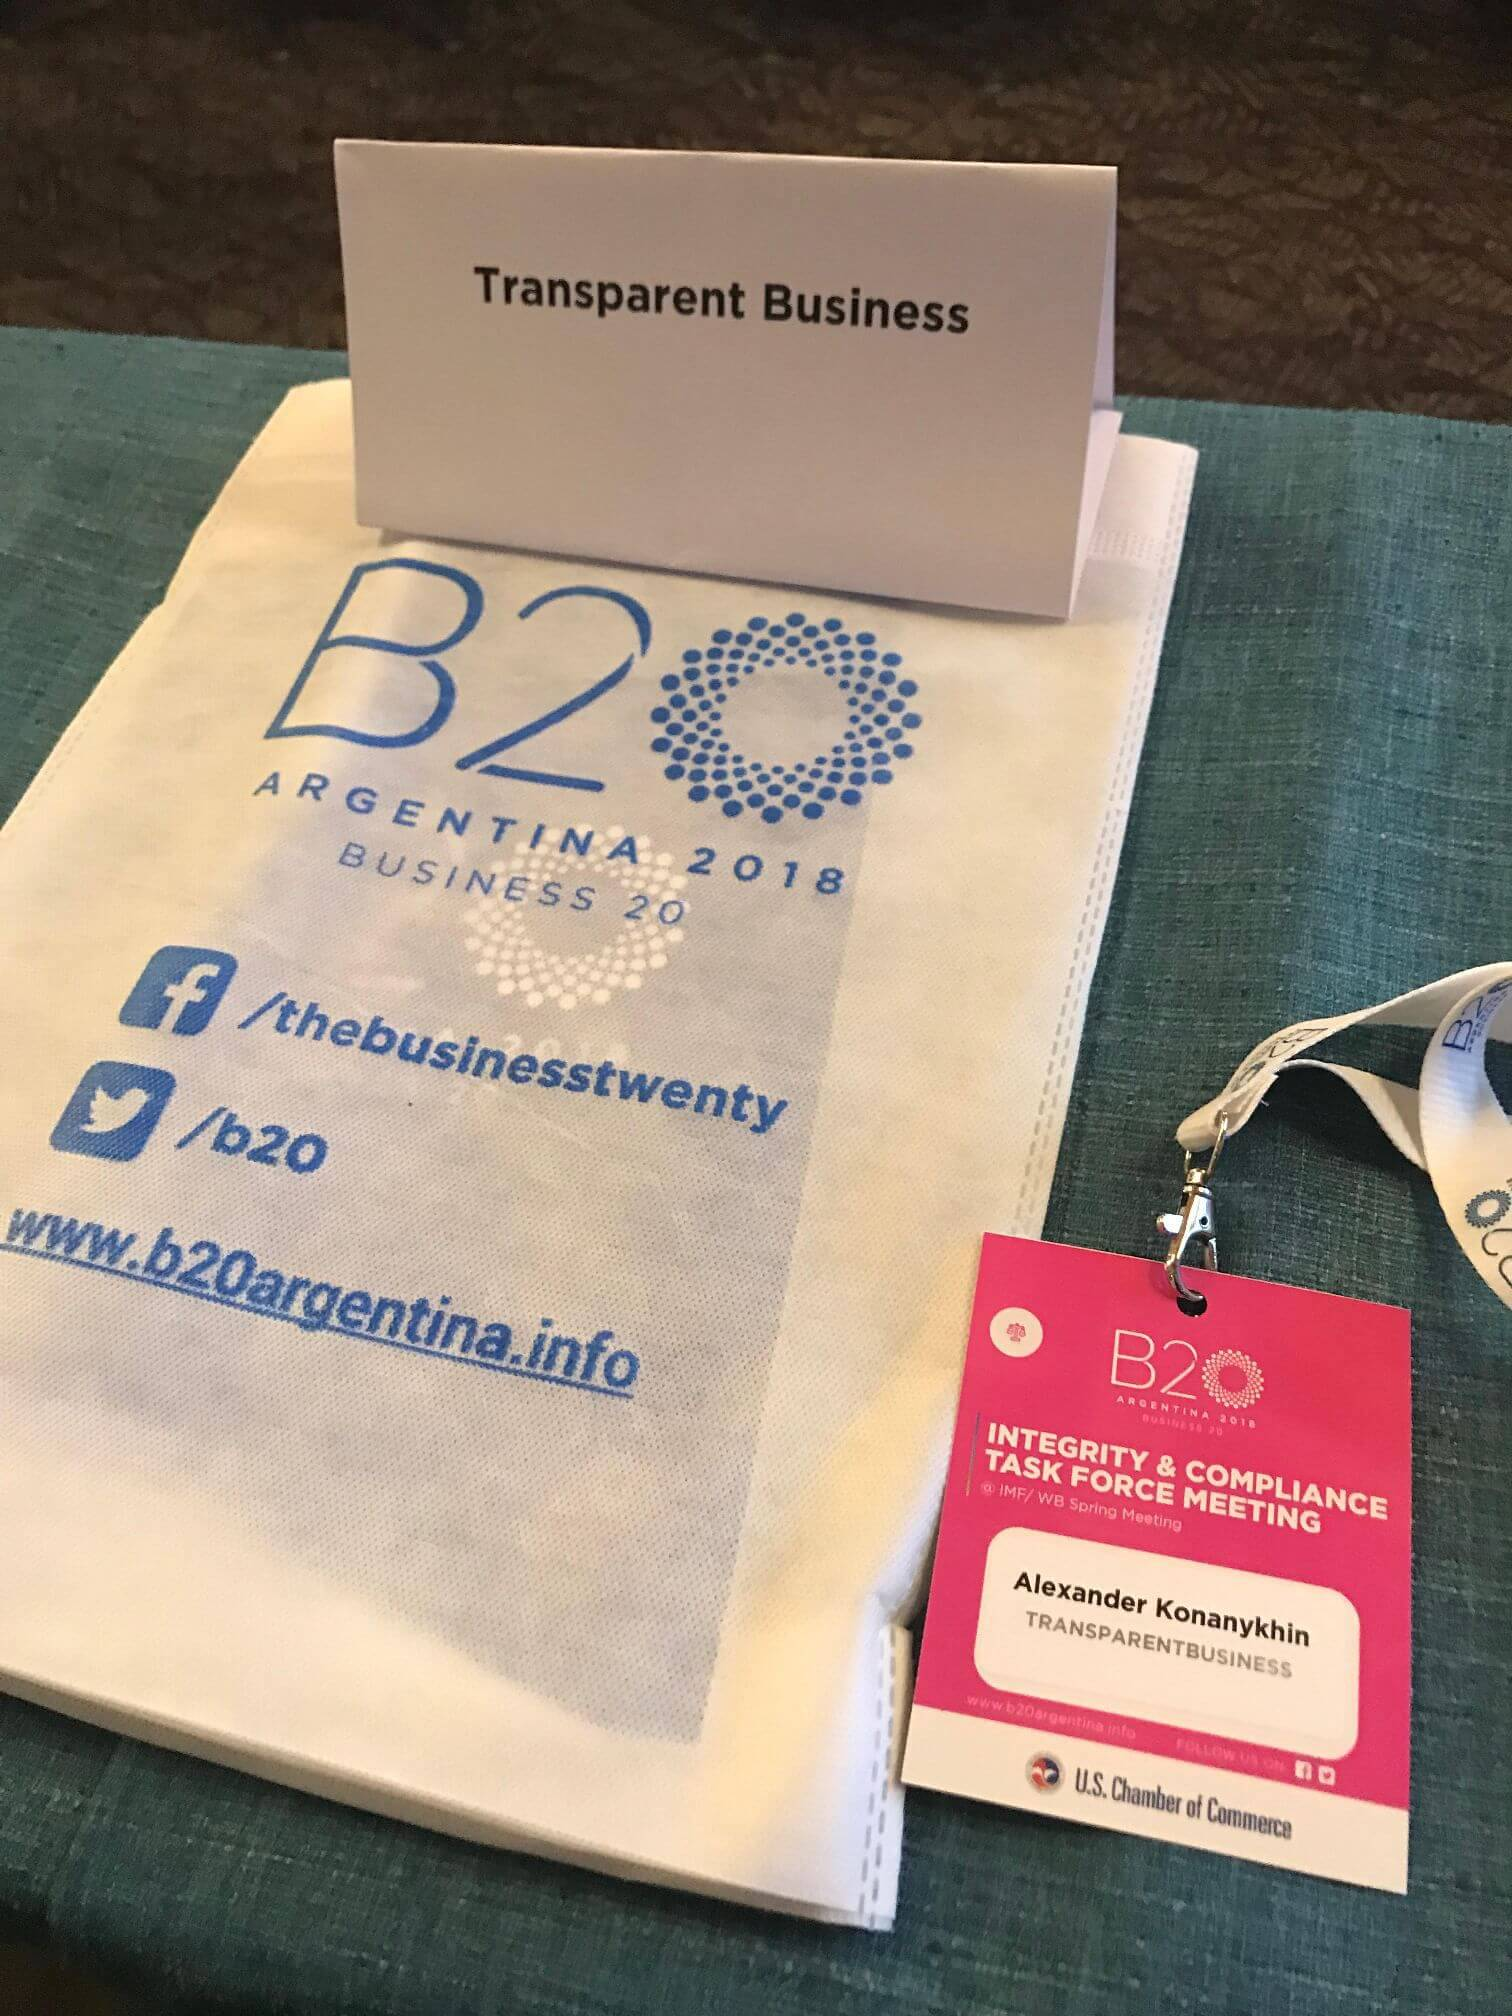 A TransparentBusiness recommendation to G20 leaders.